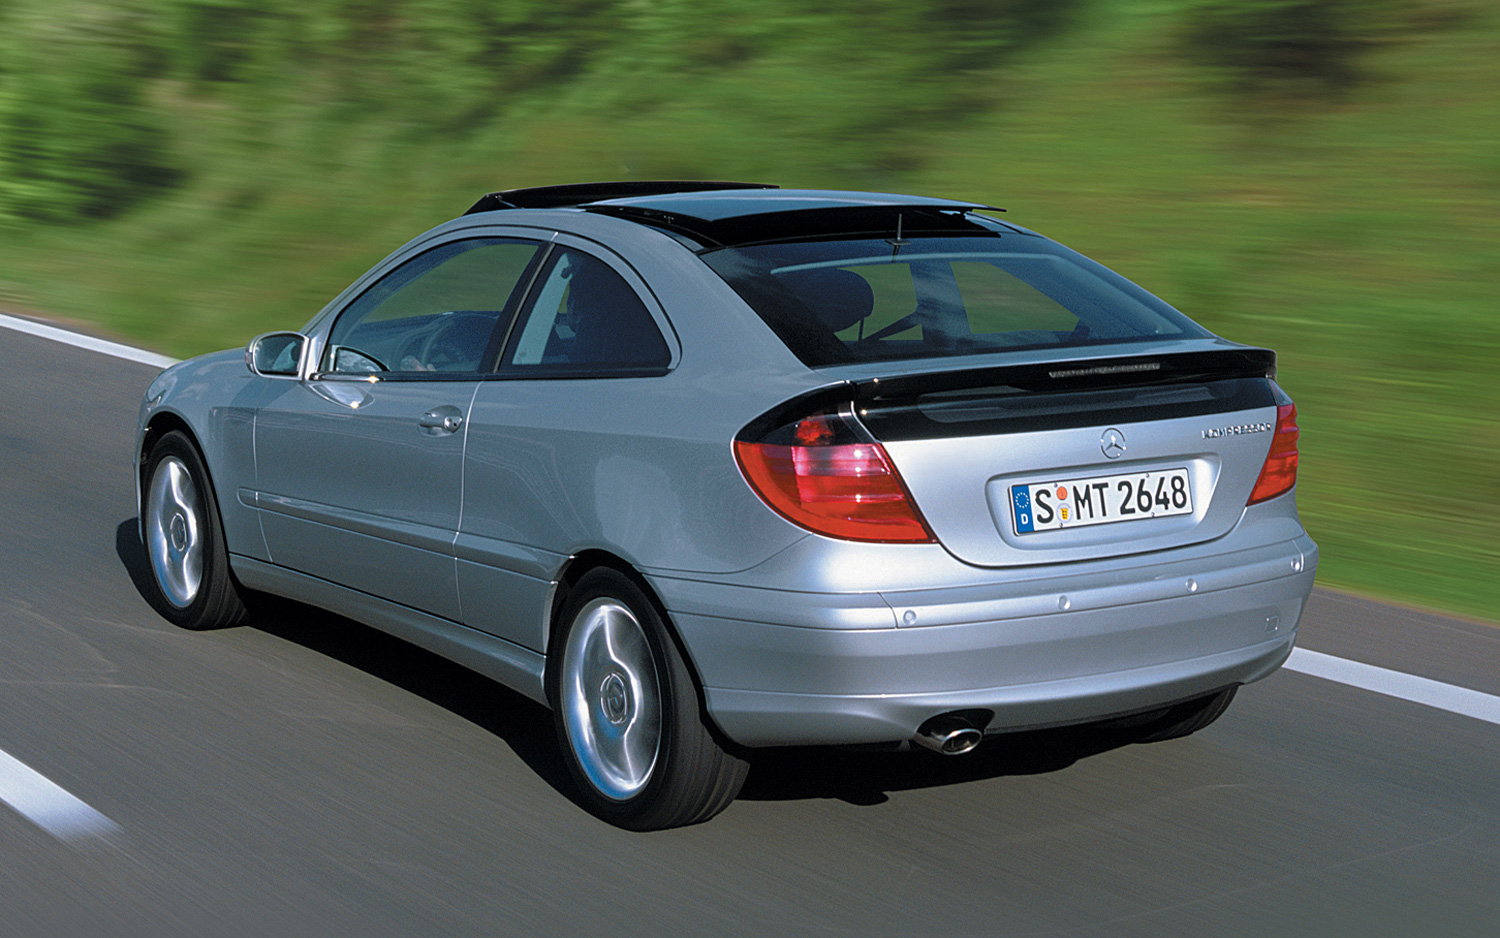 Mercedes Benz Kompressor 2002 Review Amazing Pictures And Images